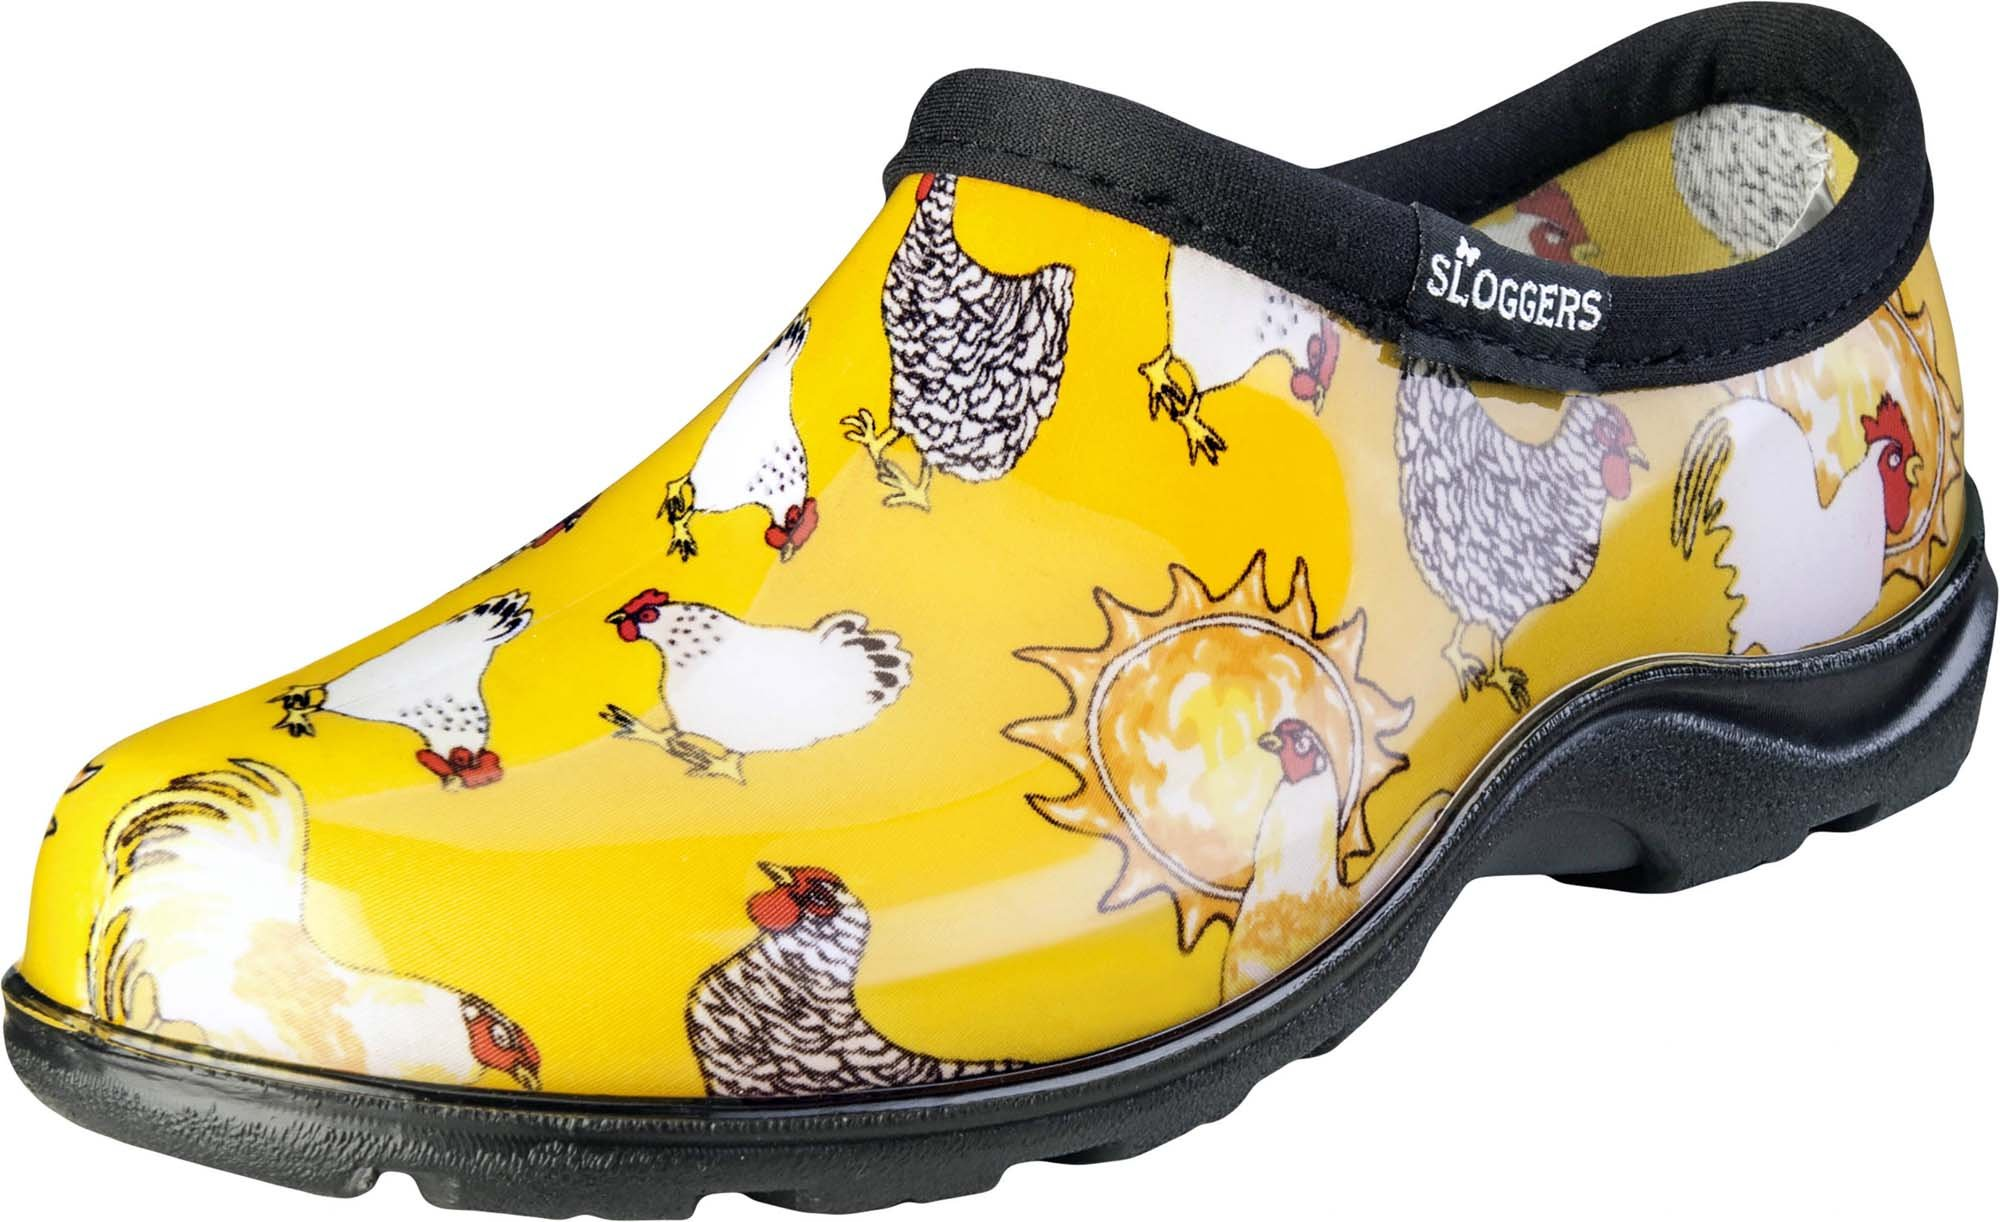 Sloggers Women's Waterproof Rain and Garden Shoe with Comfort Insole, Chickens Daffodil Yellow, Size 9, Style 5116CDY09 by Sloggers (Image #1)